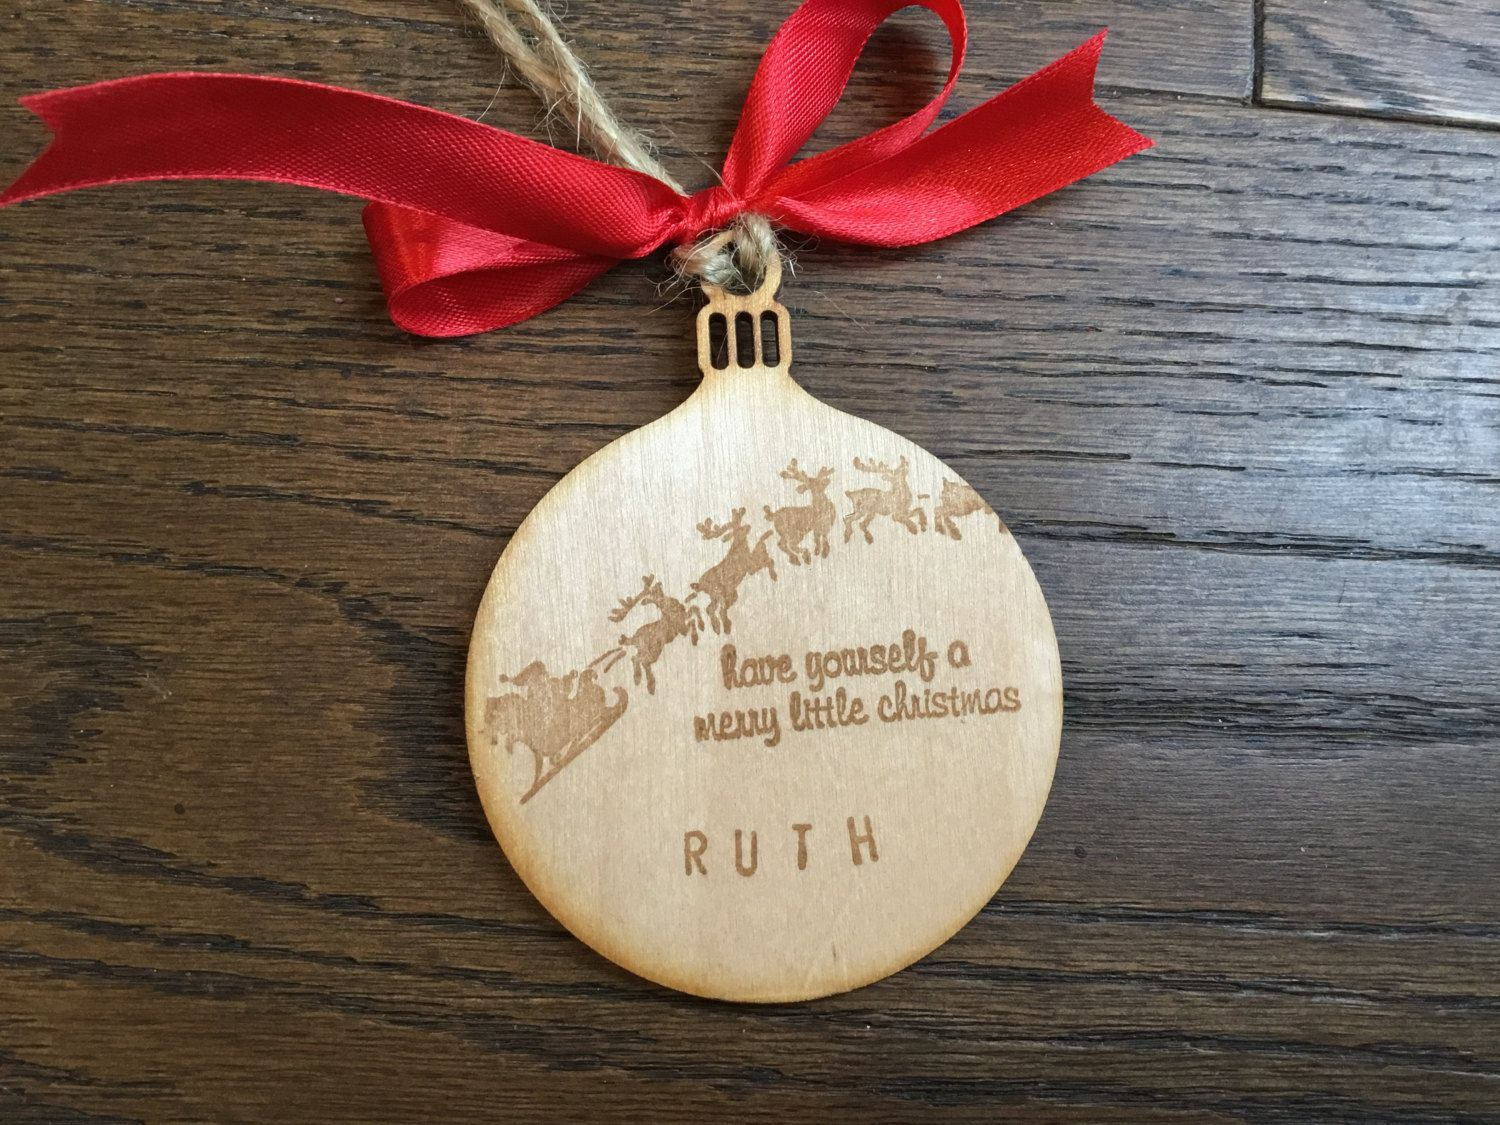 Personalised / Customised, Rustic wooden Christmas decoration, unique bauble gift, santa's sleigh, reindeer, Christmas eve by BeyondTheShed on Etsy